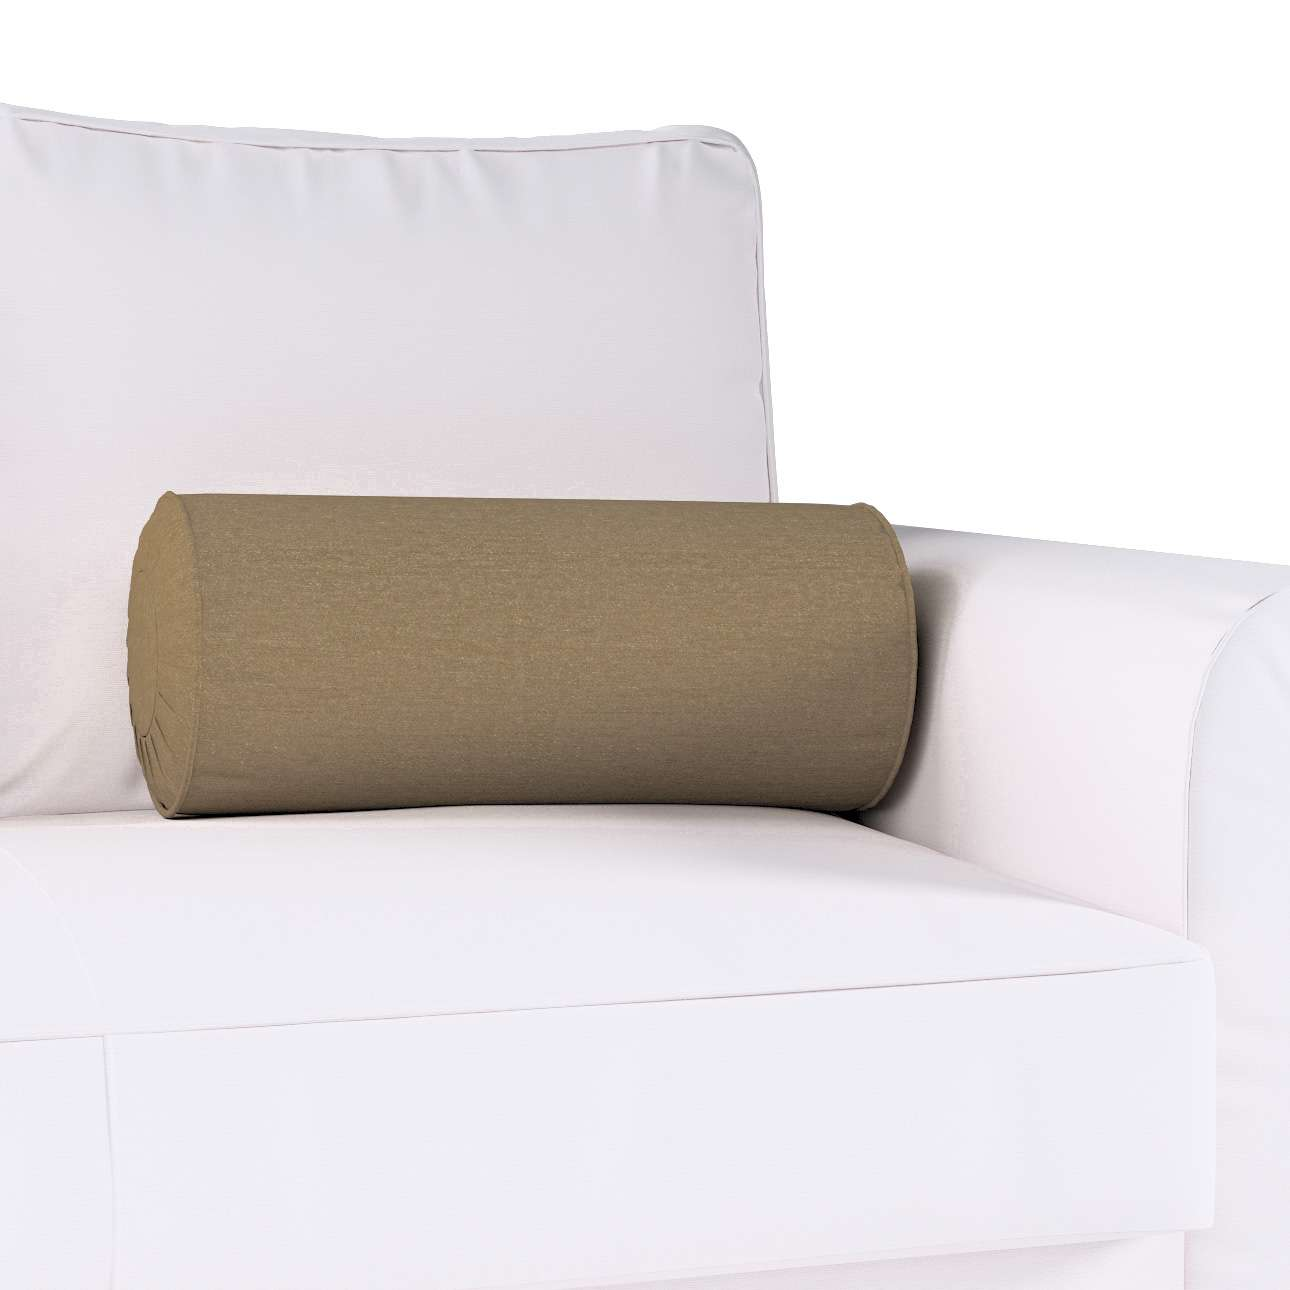 Bolster cushion with pleats in collection Chenille, fabric: 702-21